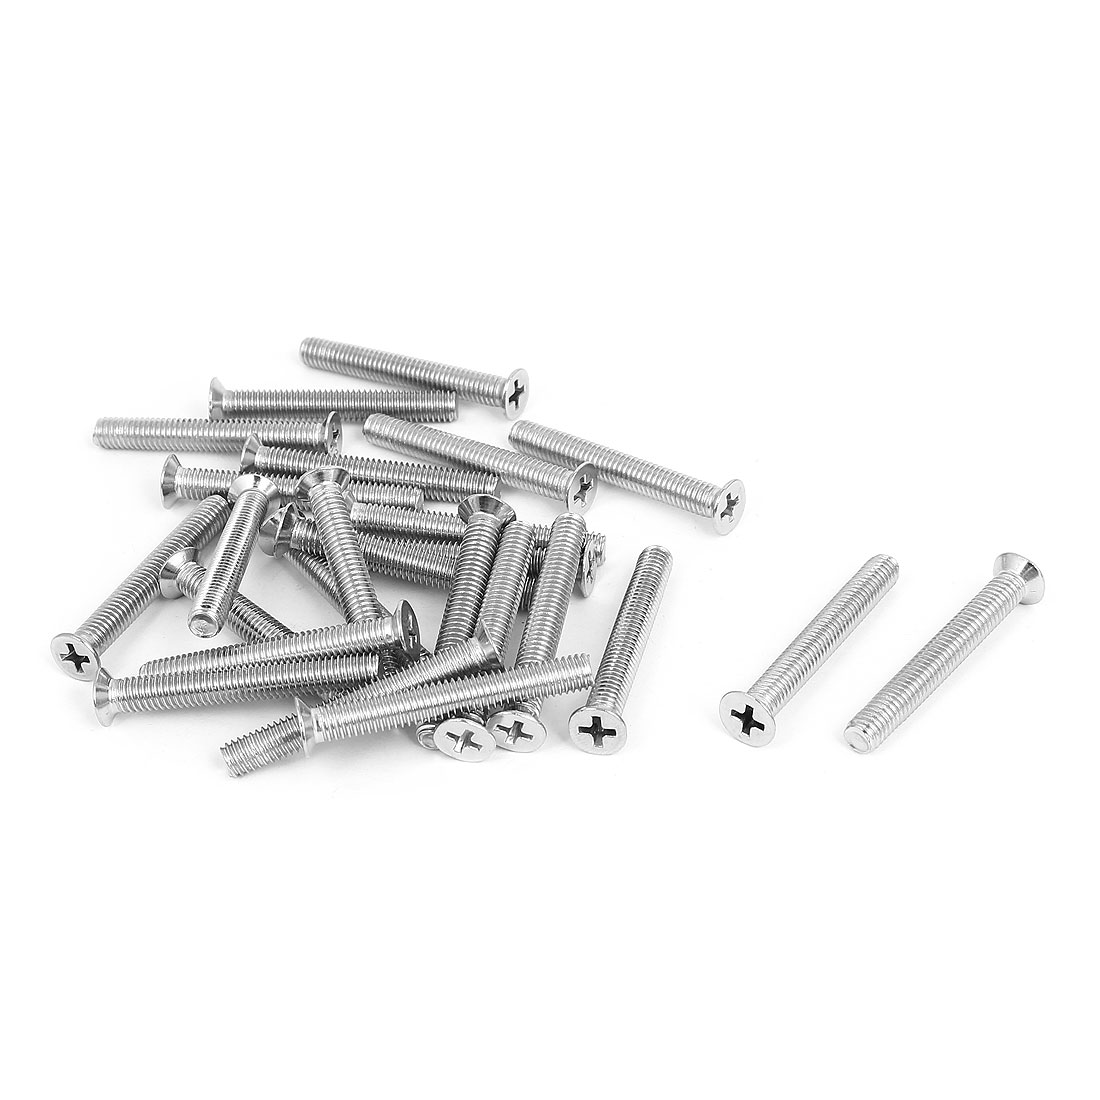 M6x45mm Stainless Steel Countersunk Flat Head Cross Phillips Screw Bolts 25pcs